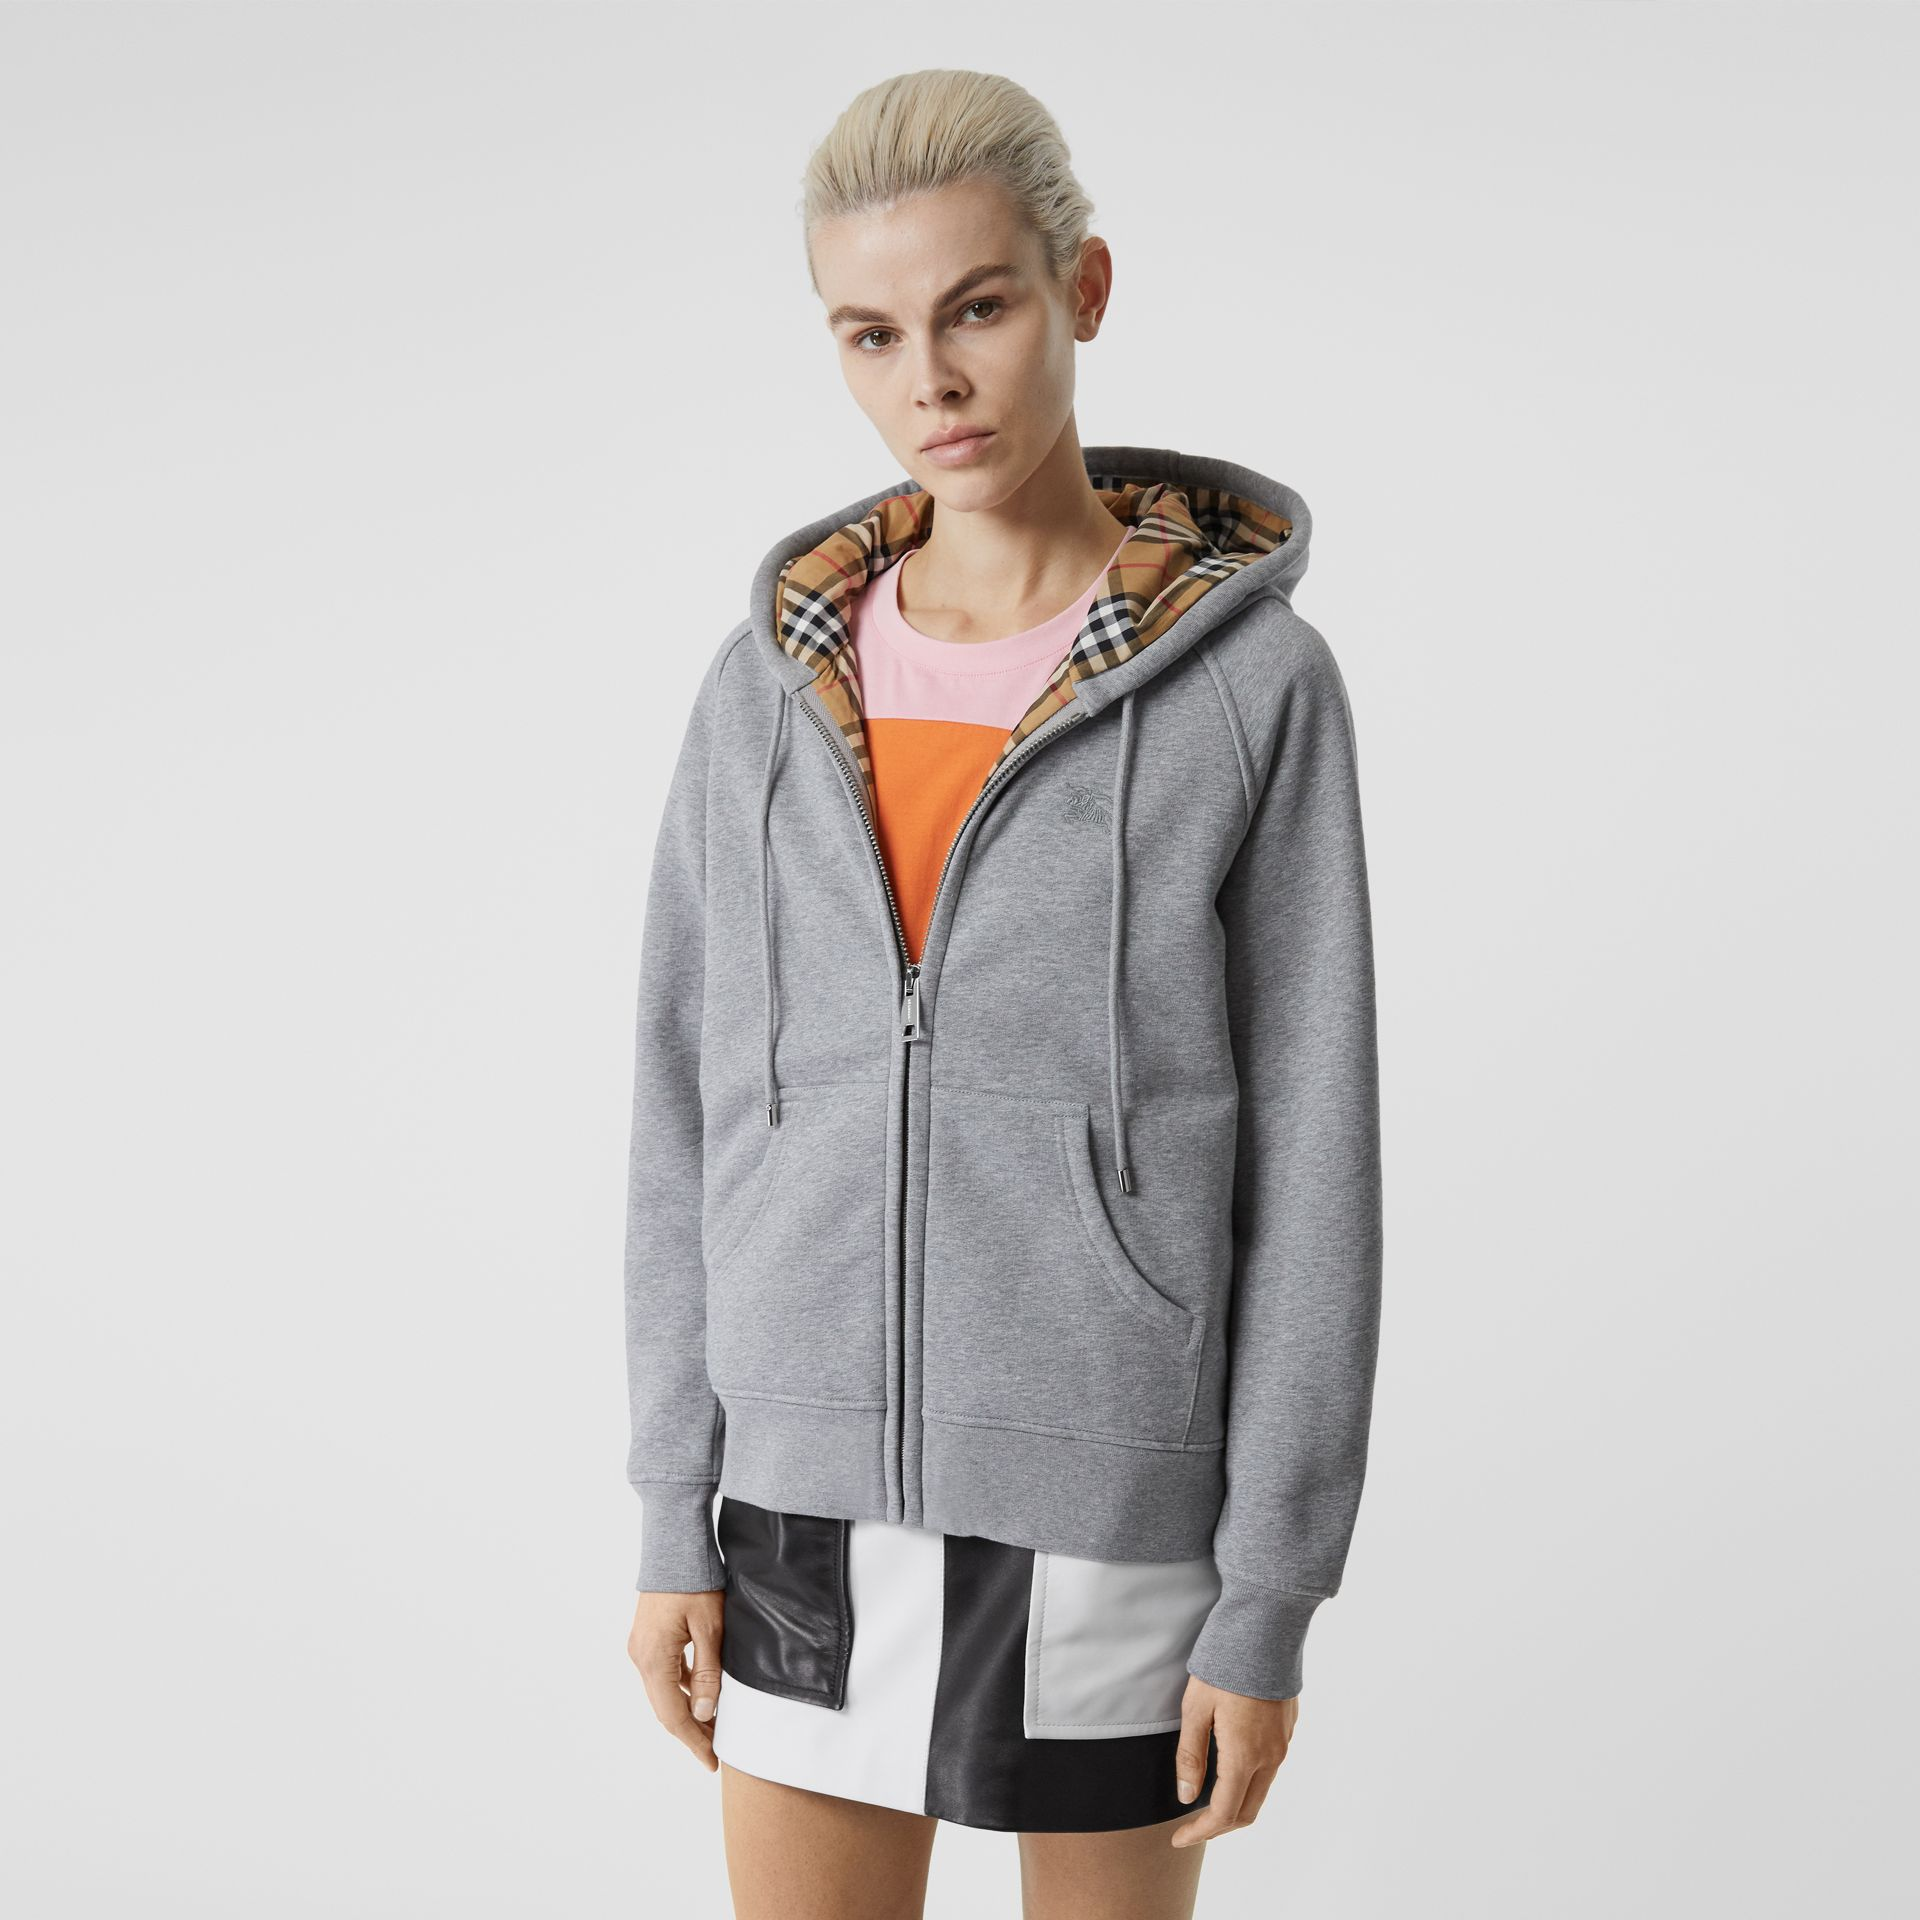 Vintage Check Detail Jersey Hooded Top in Pale Grey Melange - Women | Burberry - gallery image 4